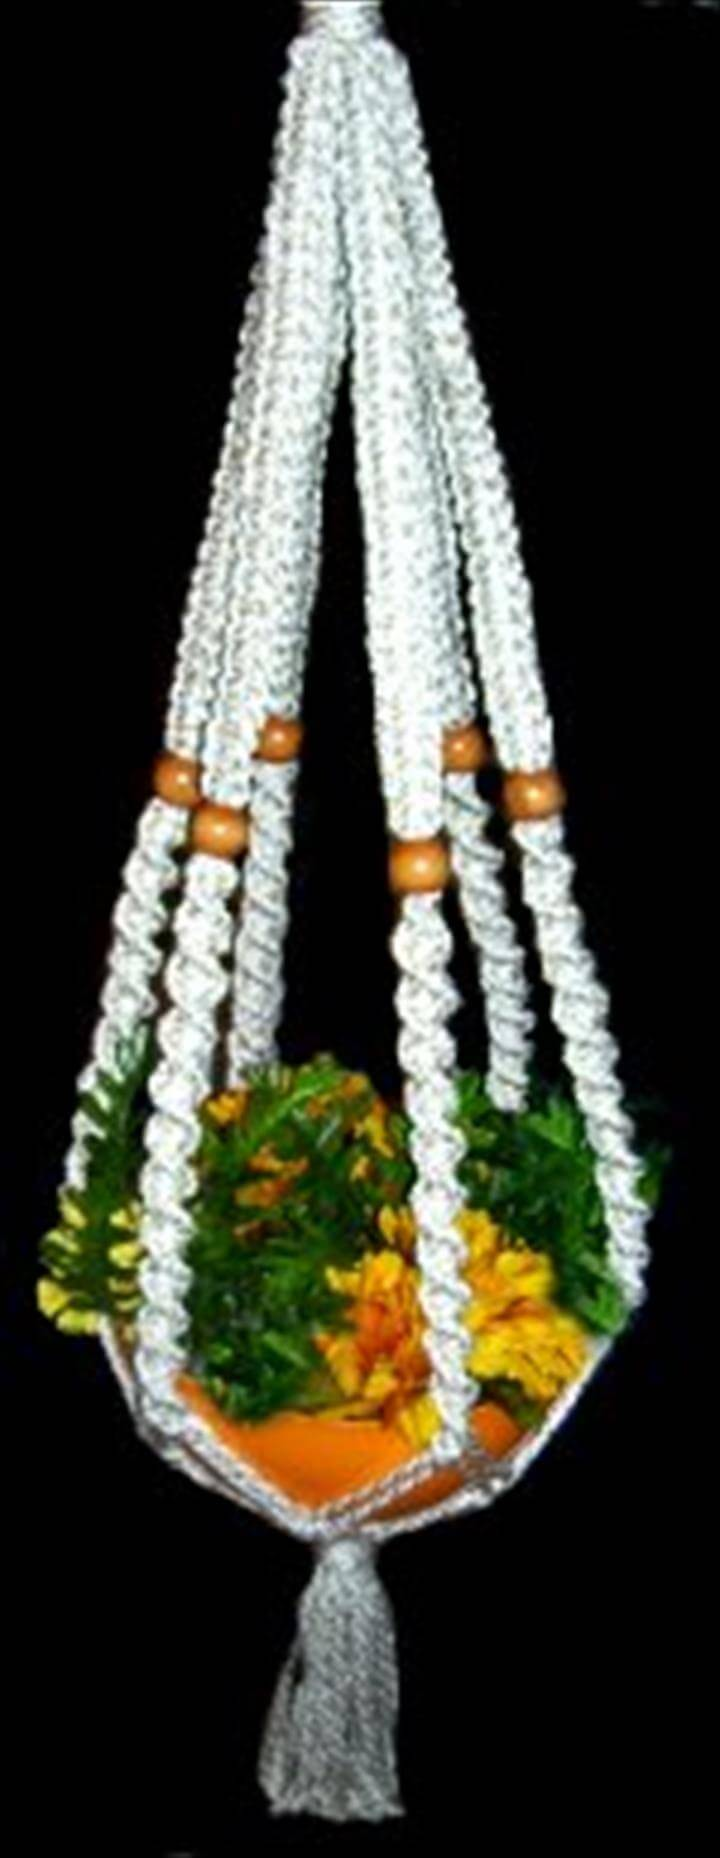 beautiful macrame plant hanger pattern